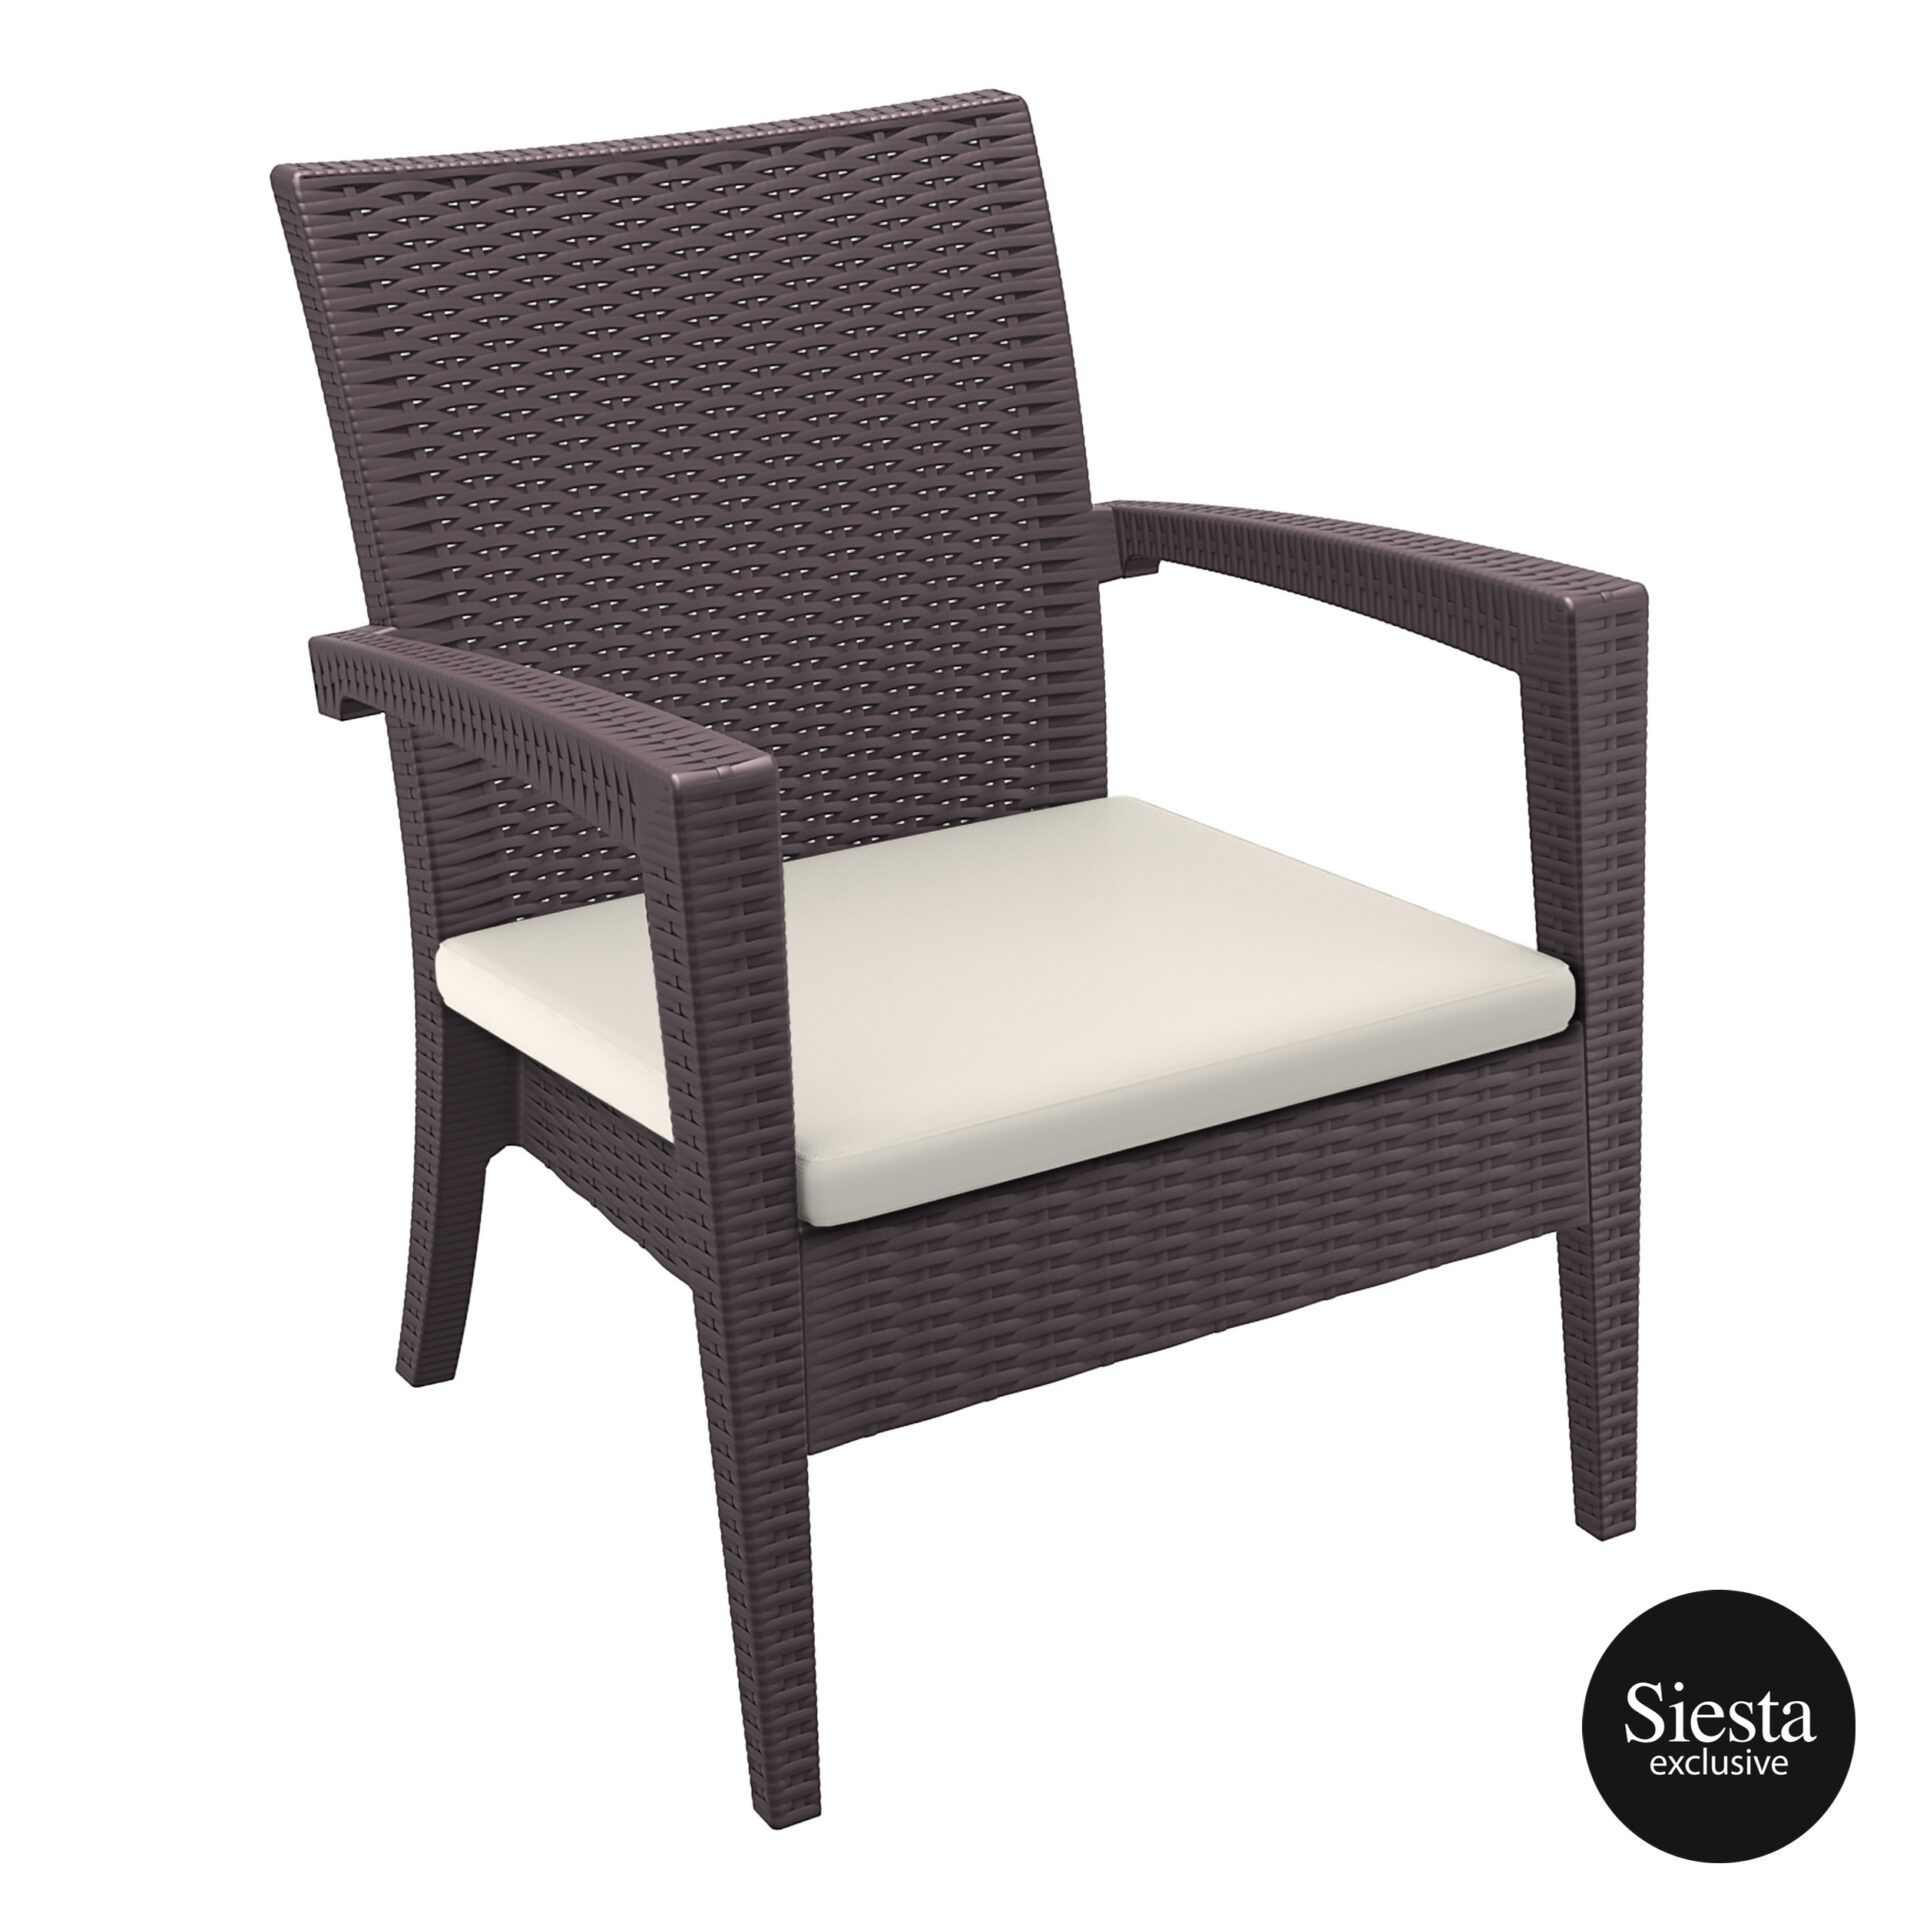 Resin Rattan Miami Tequila Lounge armchair cushion brown front side